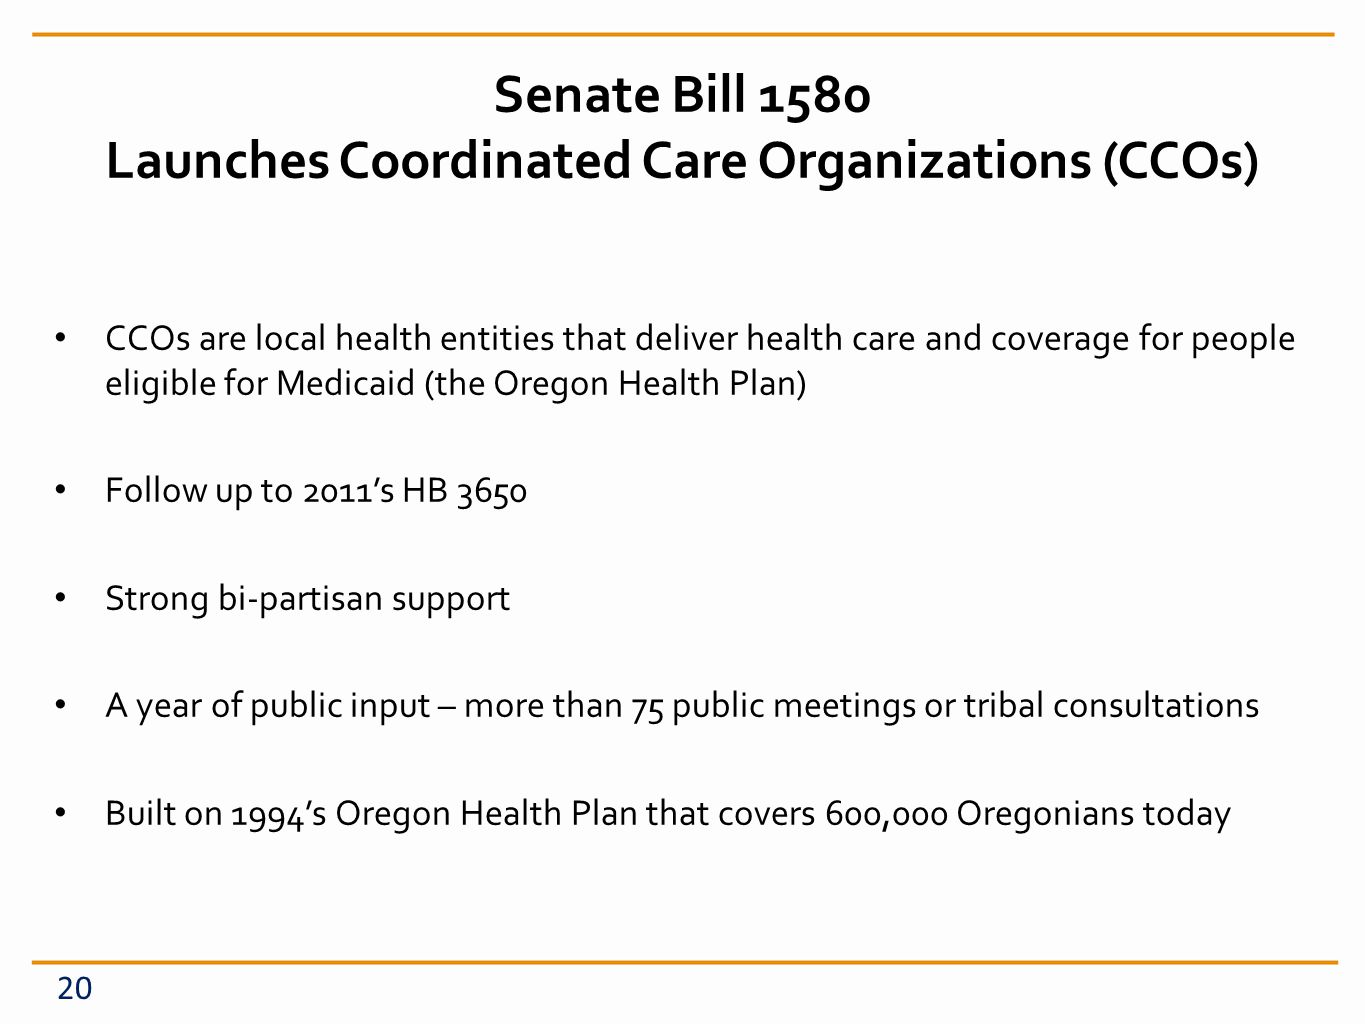 Senate Bill 1580 Launches Coordinated Care Organizations (CCOs) CCOs are local health entities that deliver health care and coverage for people eligible for Medicaid (the Oregon Health Plan) Follow up to 2011s HB 3650 Strong bi-partisan support A year of public input – more than 75 public meetings or tribal consultations Built on 1994s Oregon Health Plan that covers 600,000 Oregonians today 20